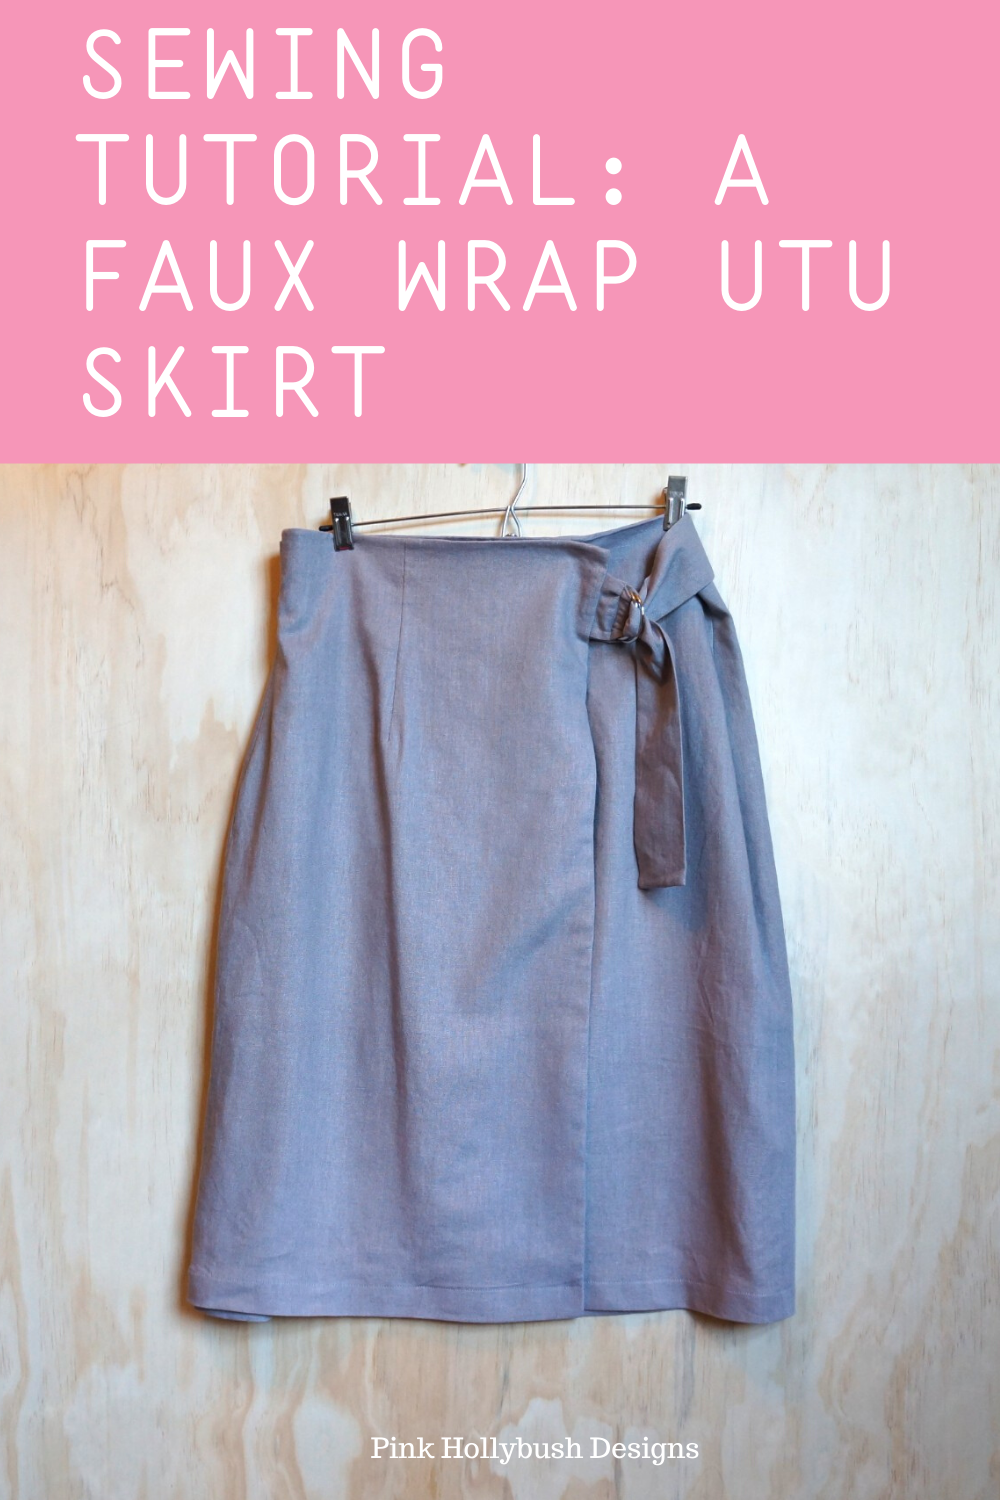 Sewing a Faux Wrap Utu Skirt